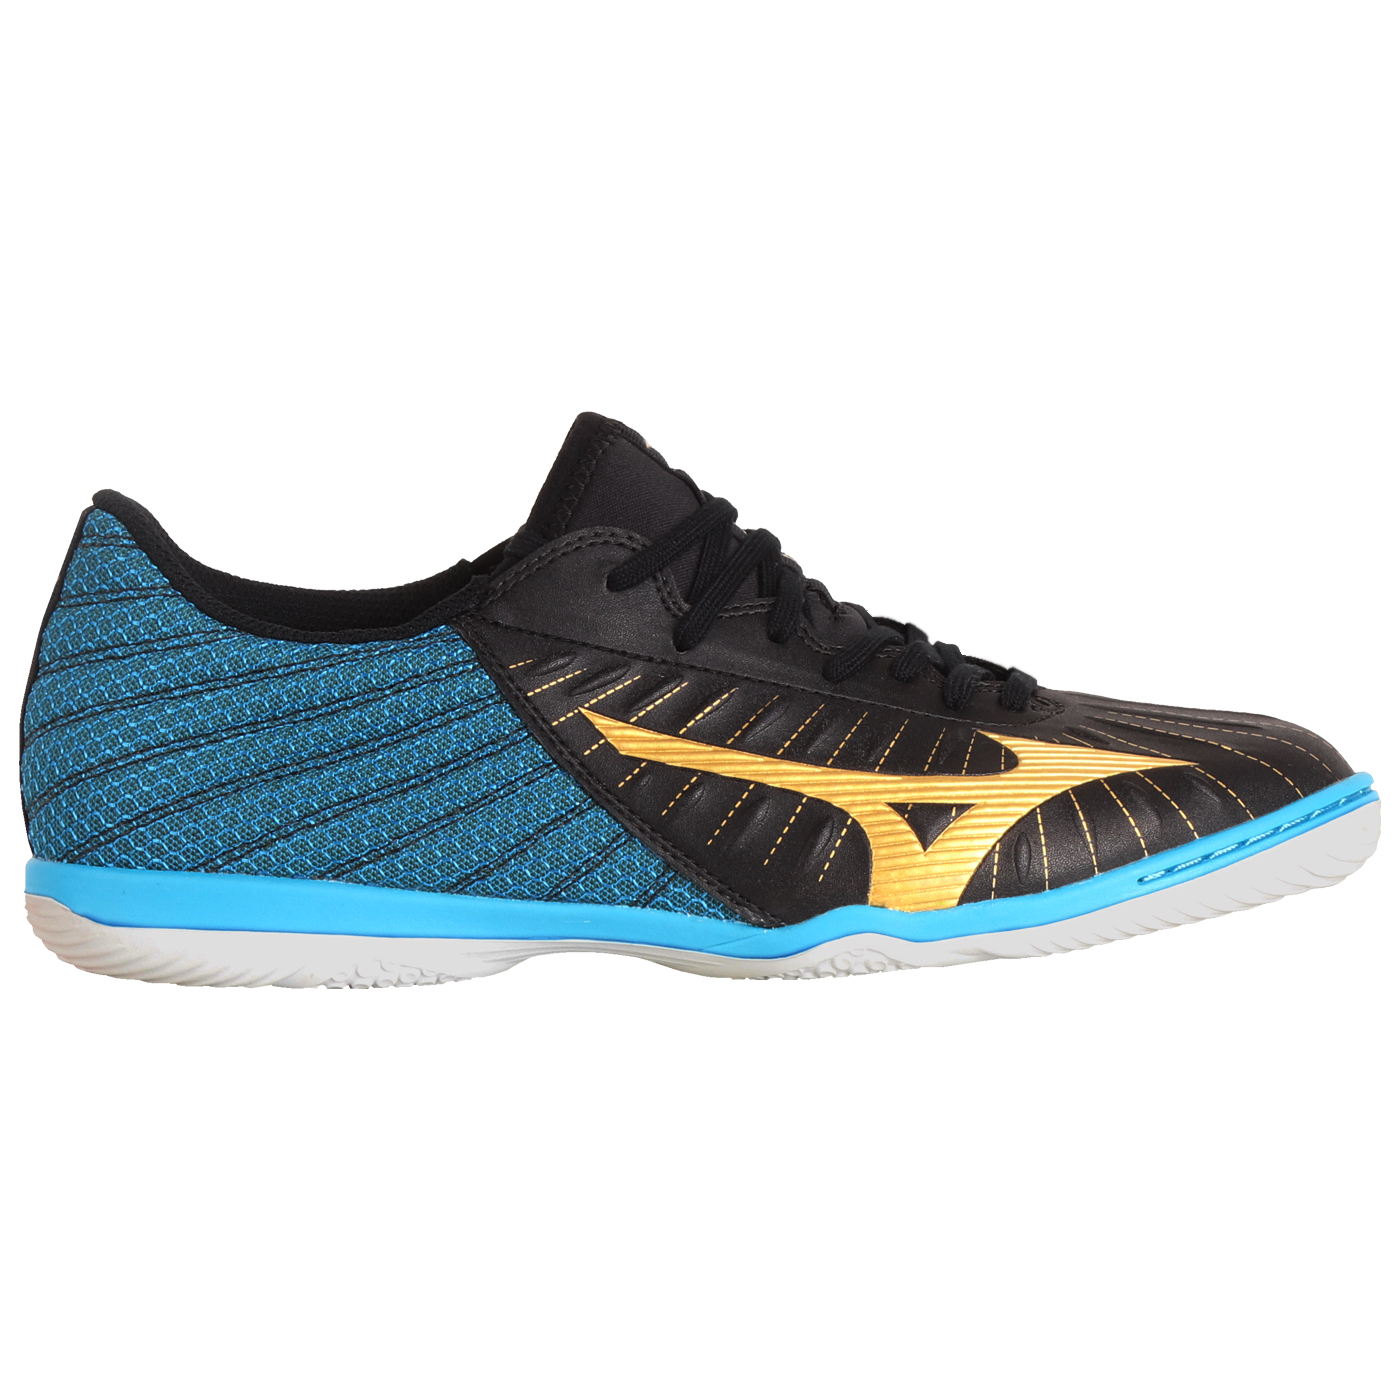 REBULA SALA SELECT IN - BLACK/ GOLD/ BLUE JEWEL